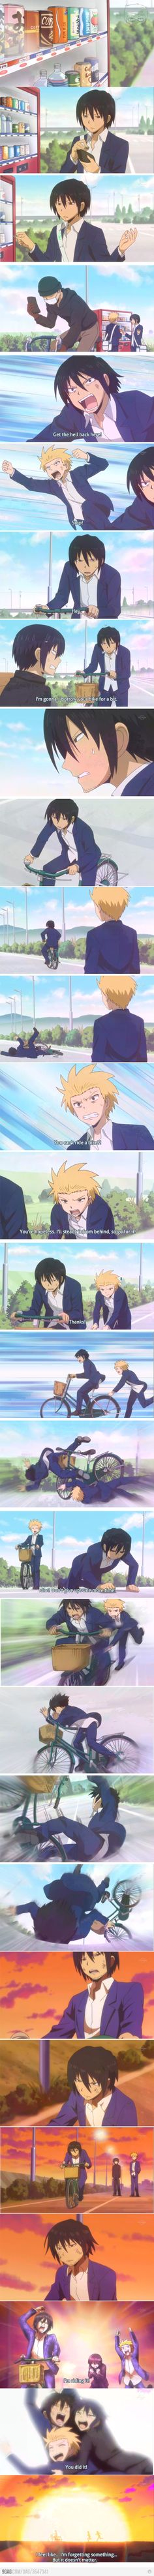 I love this anime lol! Scene from Danshi Koukousei no Nichijou (daily lives of high school boys) super hilarious anime Anime Love, Bebe Anime, All Anime, Awesome Anime, Manga Anime, Anime Stuff, Saiunkoku Monogatari, Danshi Koukousei No Nichijou, The Ancient Magus Bride